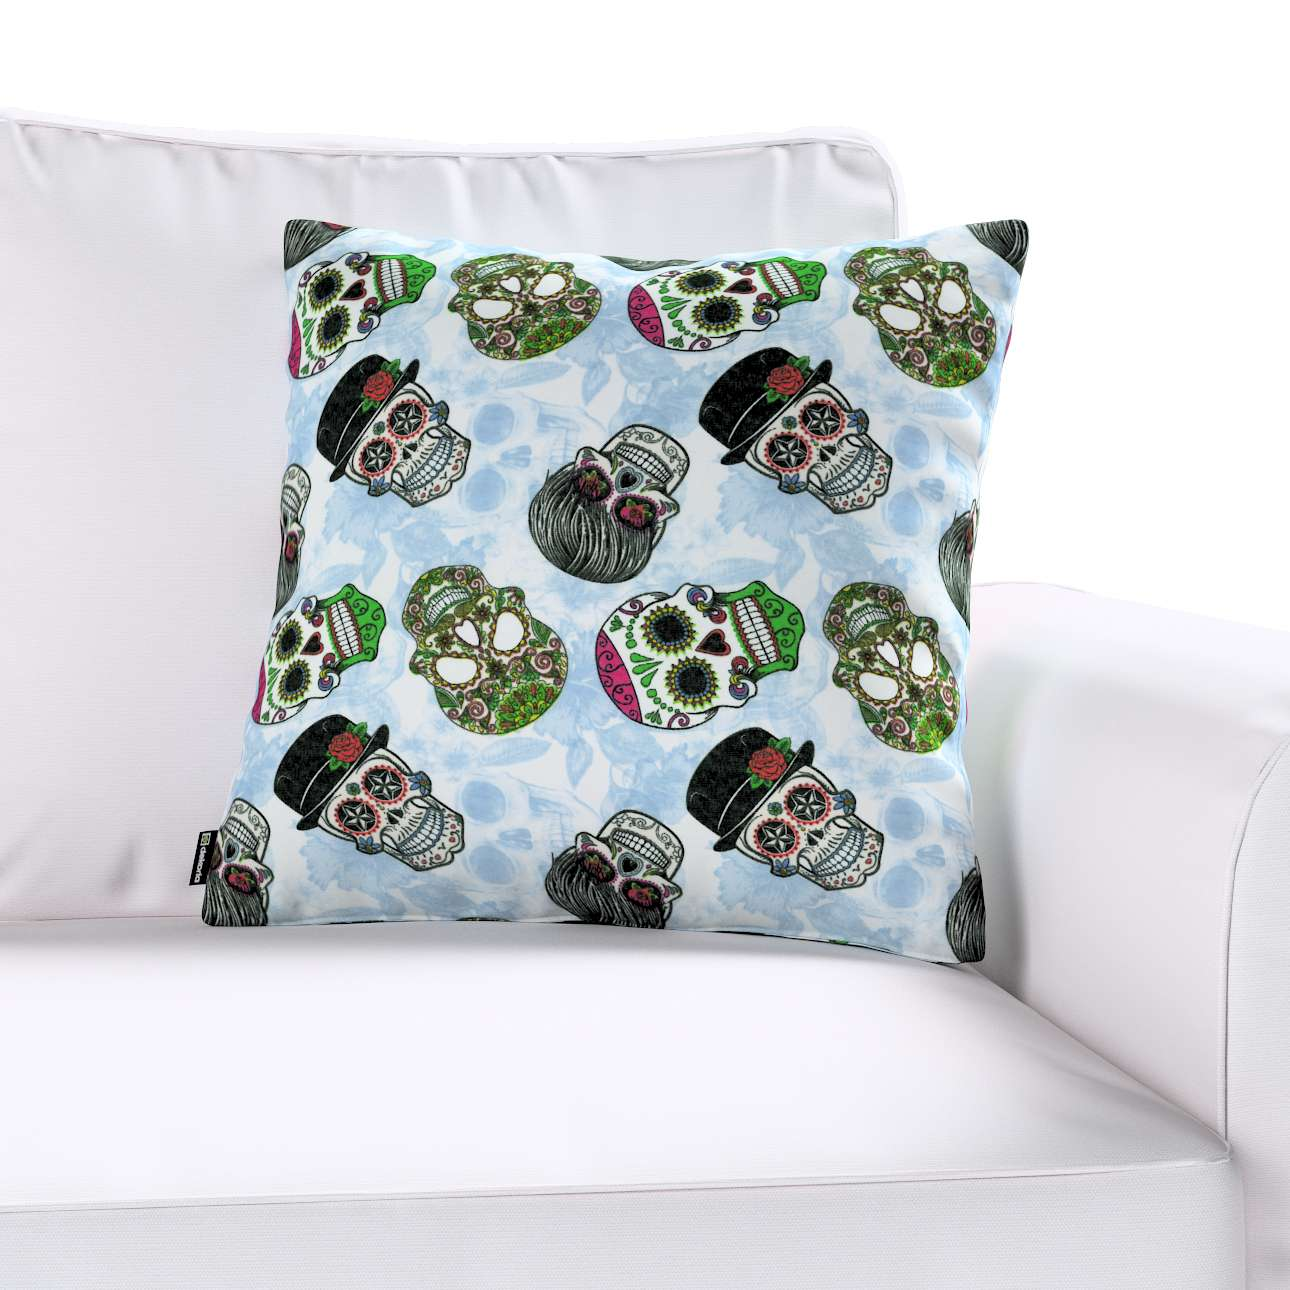 Kinga cushion cover in collection Freestyle, fabric: 141-01